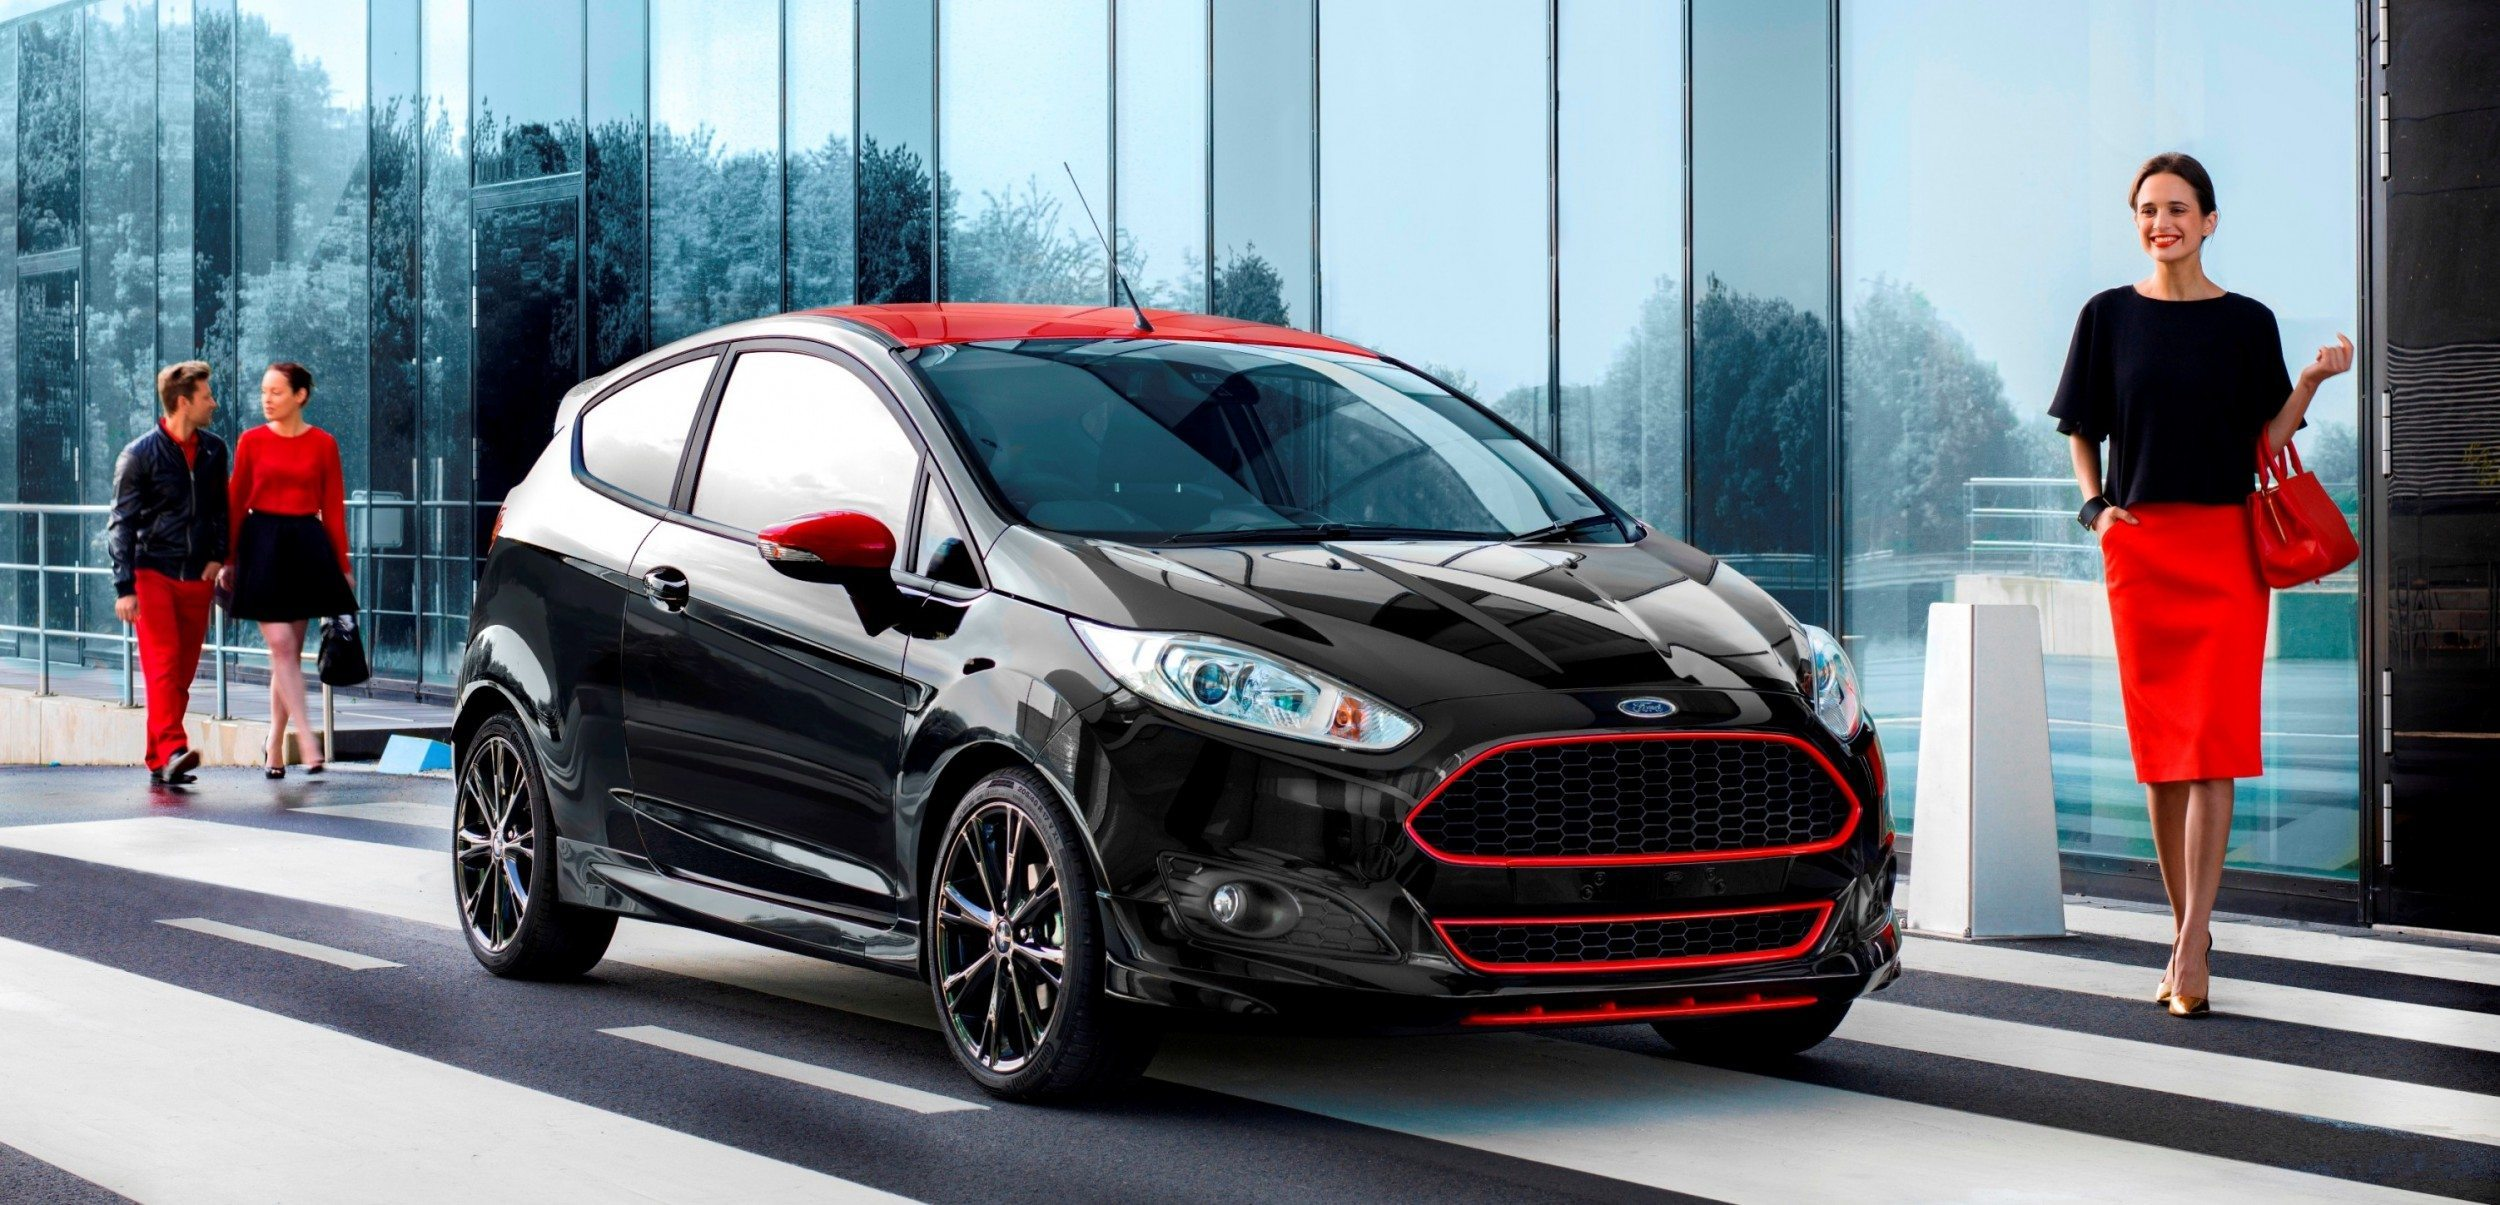 All Black Ford Fiesta 2014 Ford Fiesta Red Edition And Fiesta Black Edition For